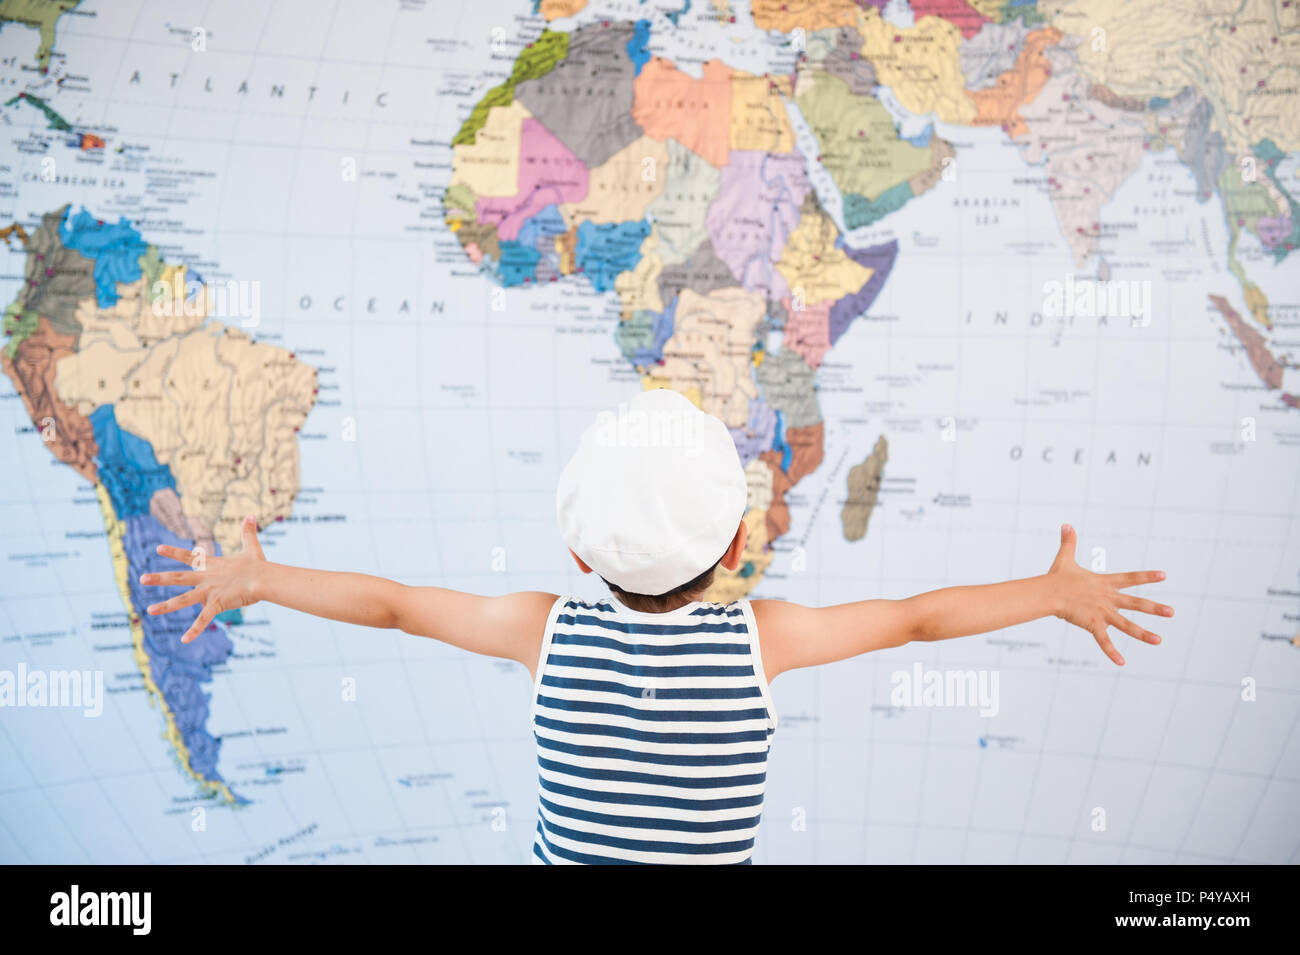 World Map On Hands.Little Child In Captain Hat Spreading Hands To World Map Stock Photo